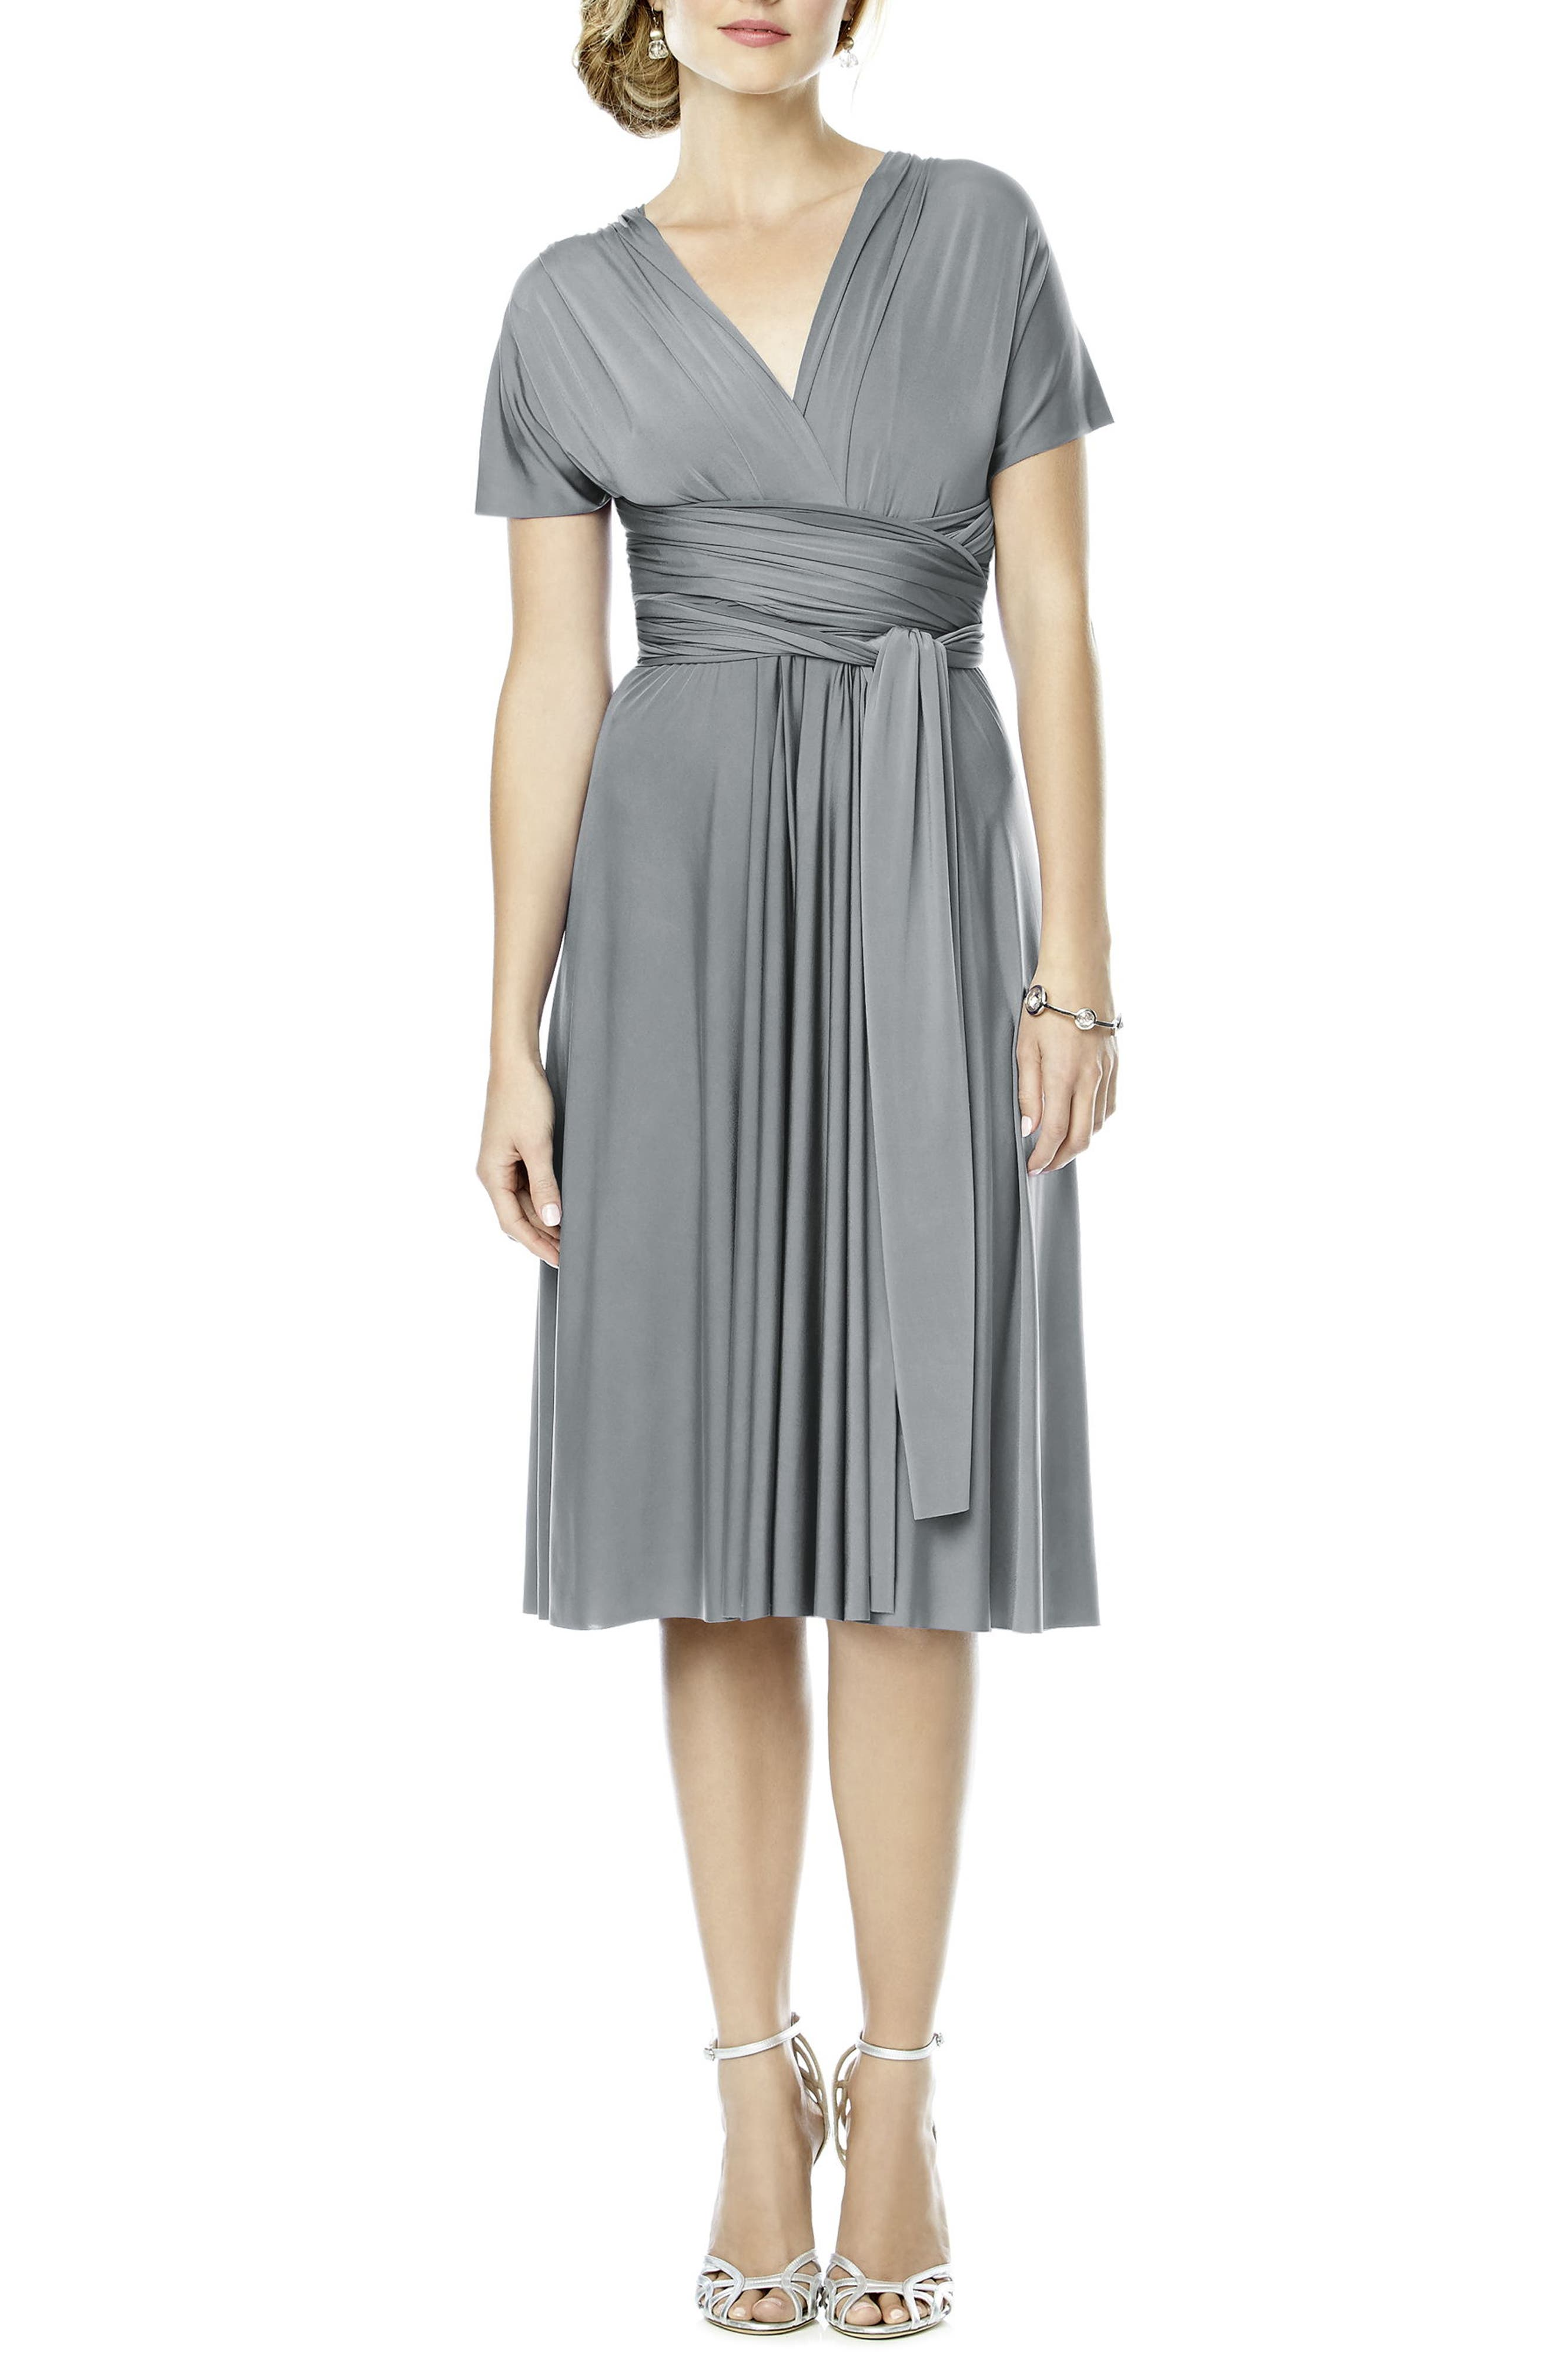 Alternate Image 1 Selected - Dessy Collection Convertible Wrap Tie Surplice Jersey Dress